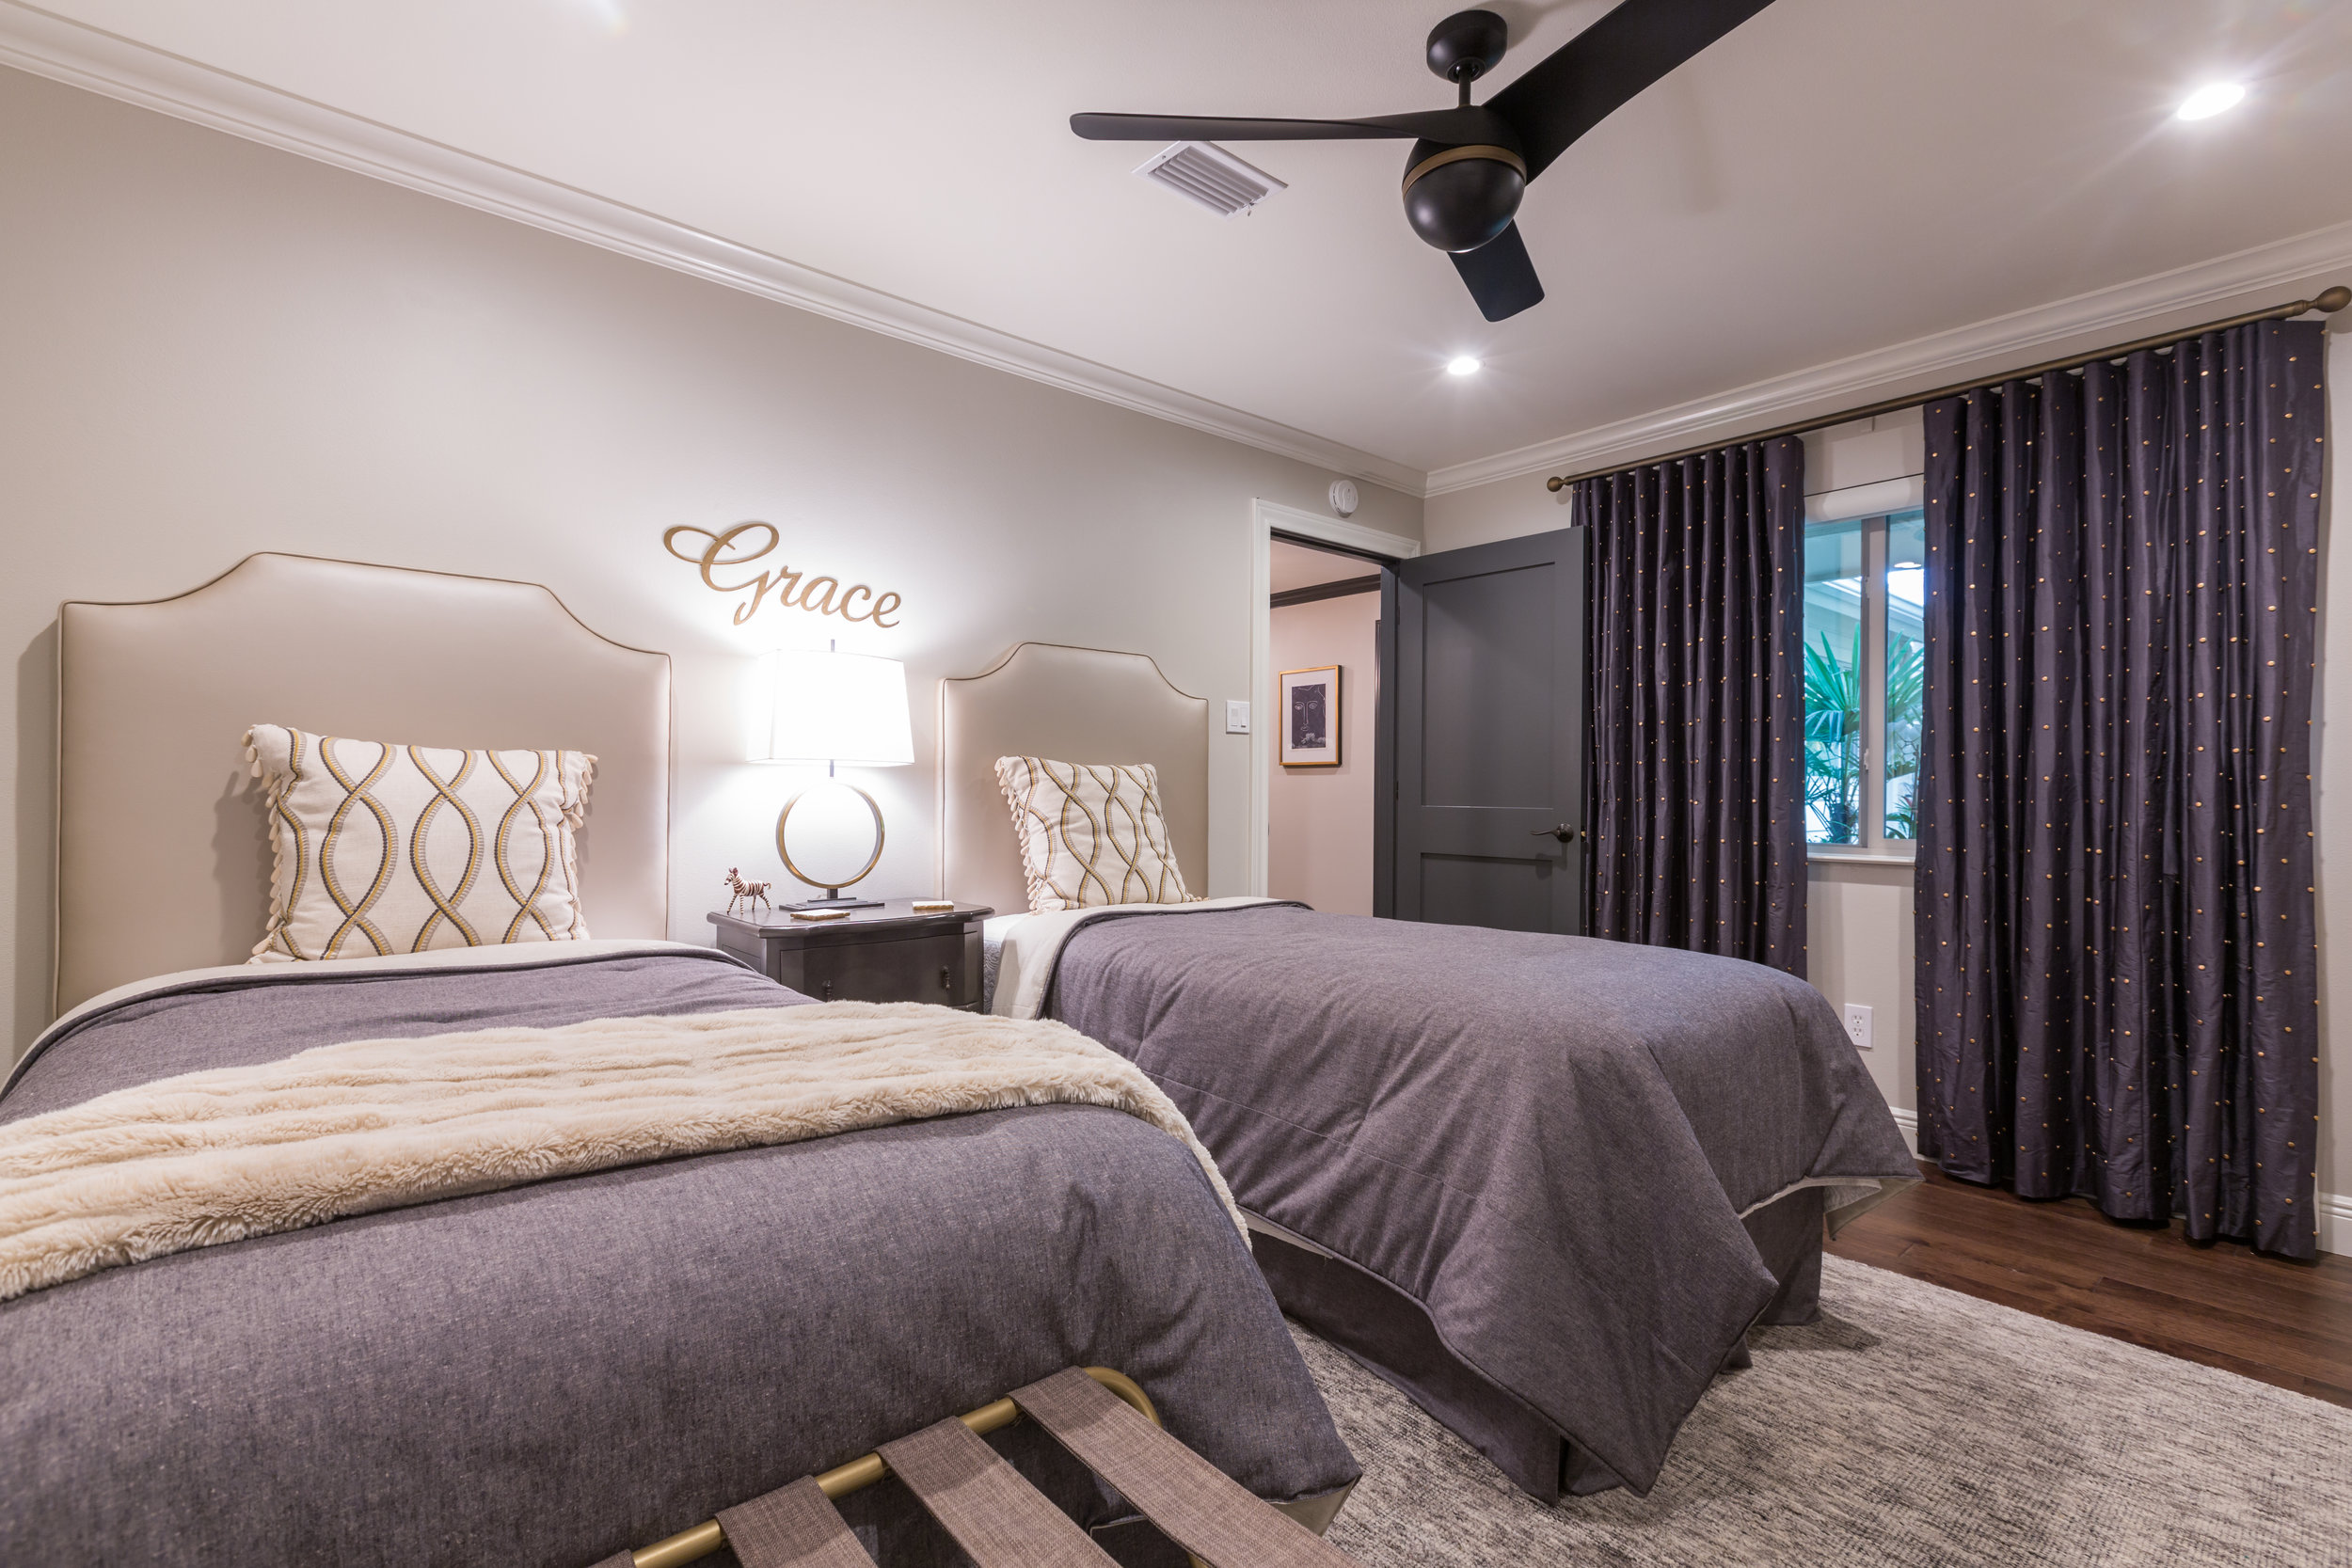 Completely remodeled guest bedroom in austin condo